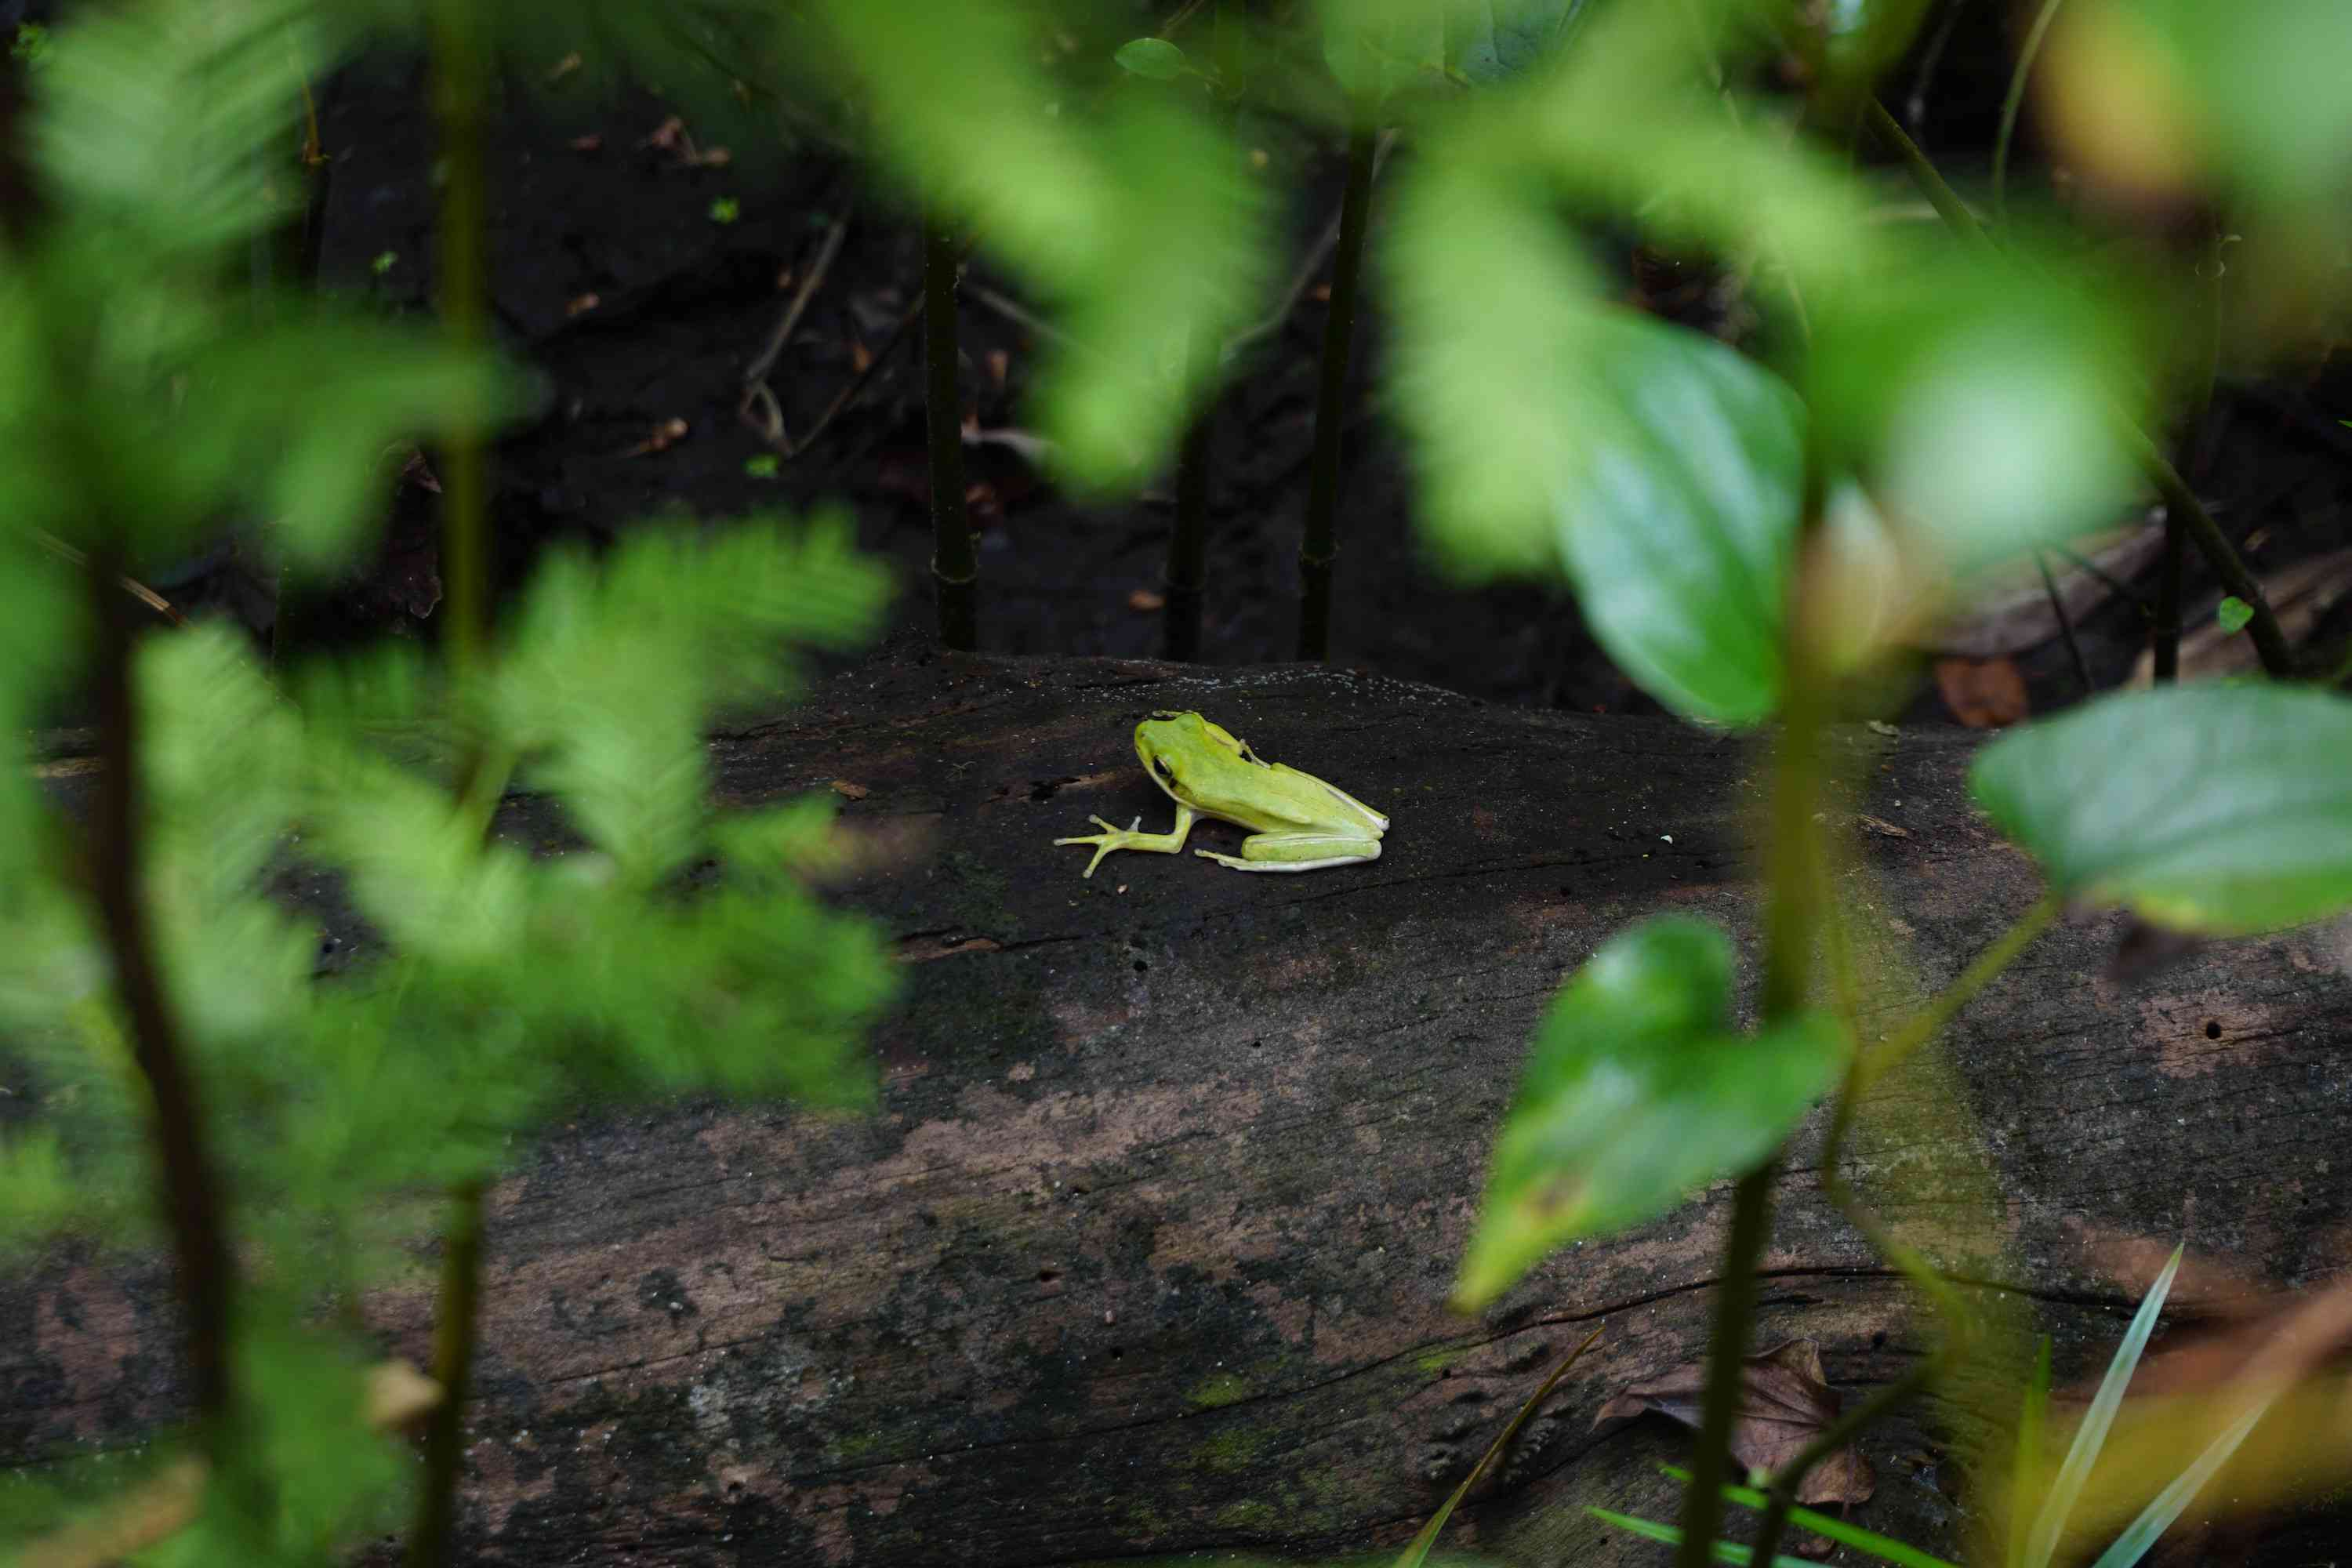 A green tree frog on a log in a forest in North Carolina